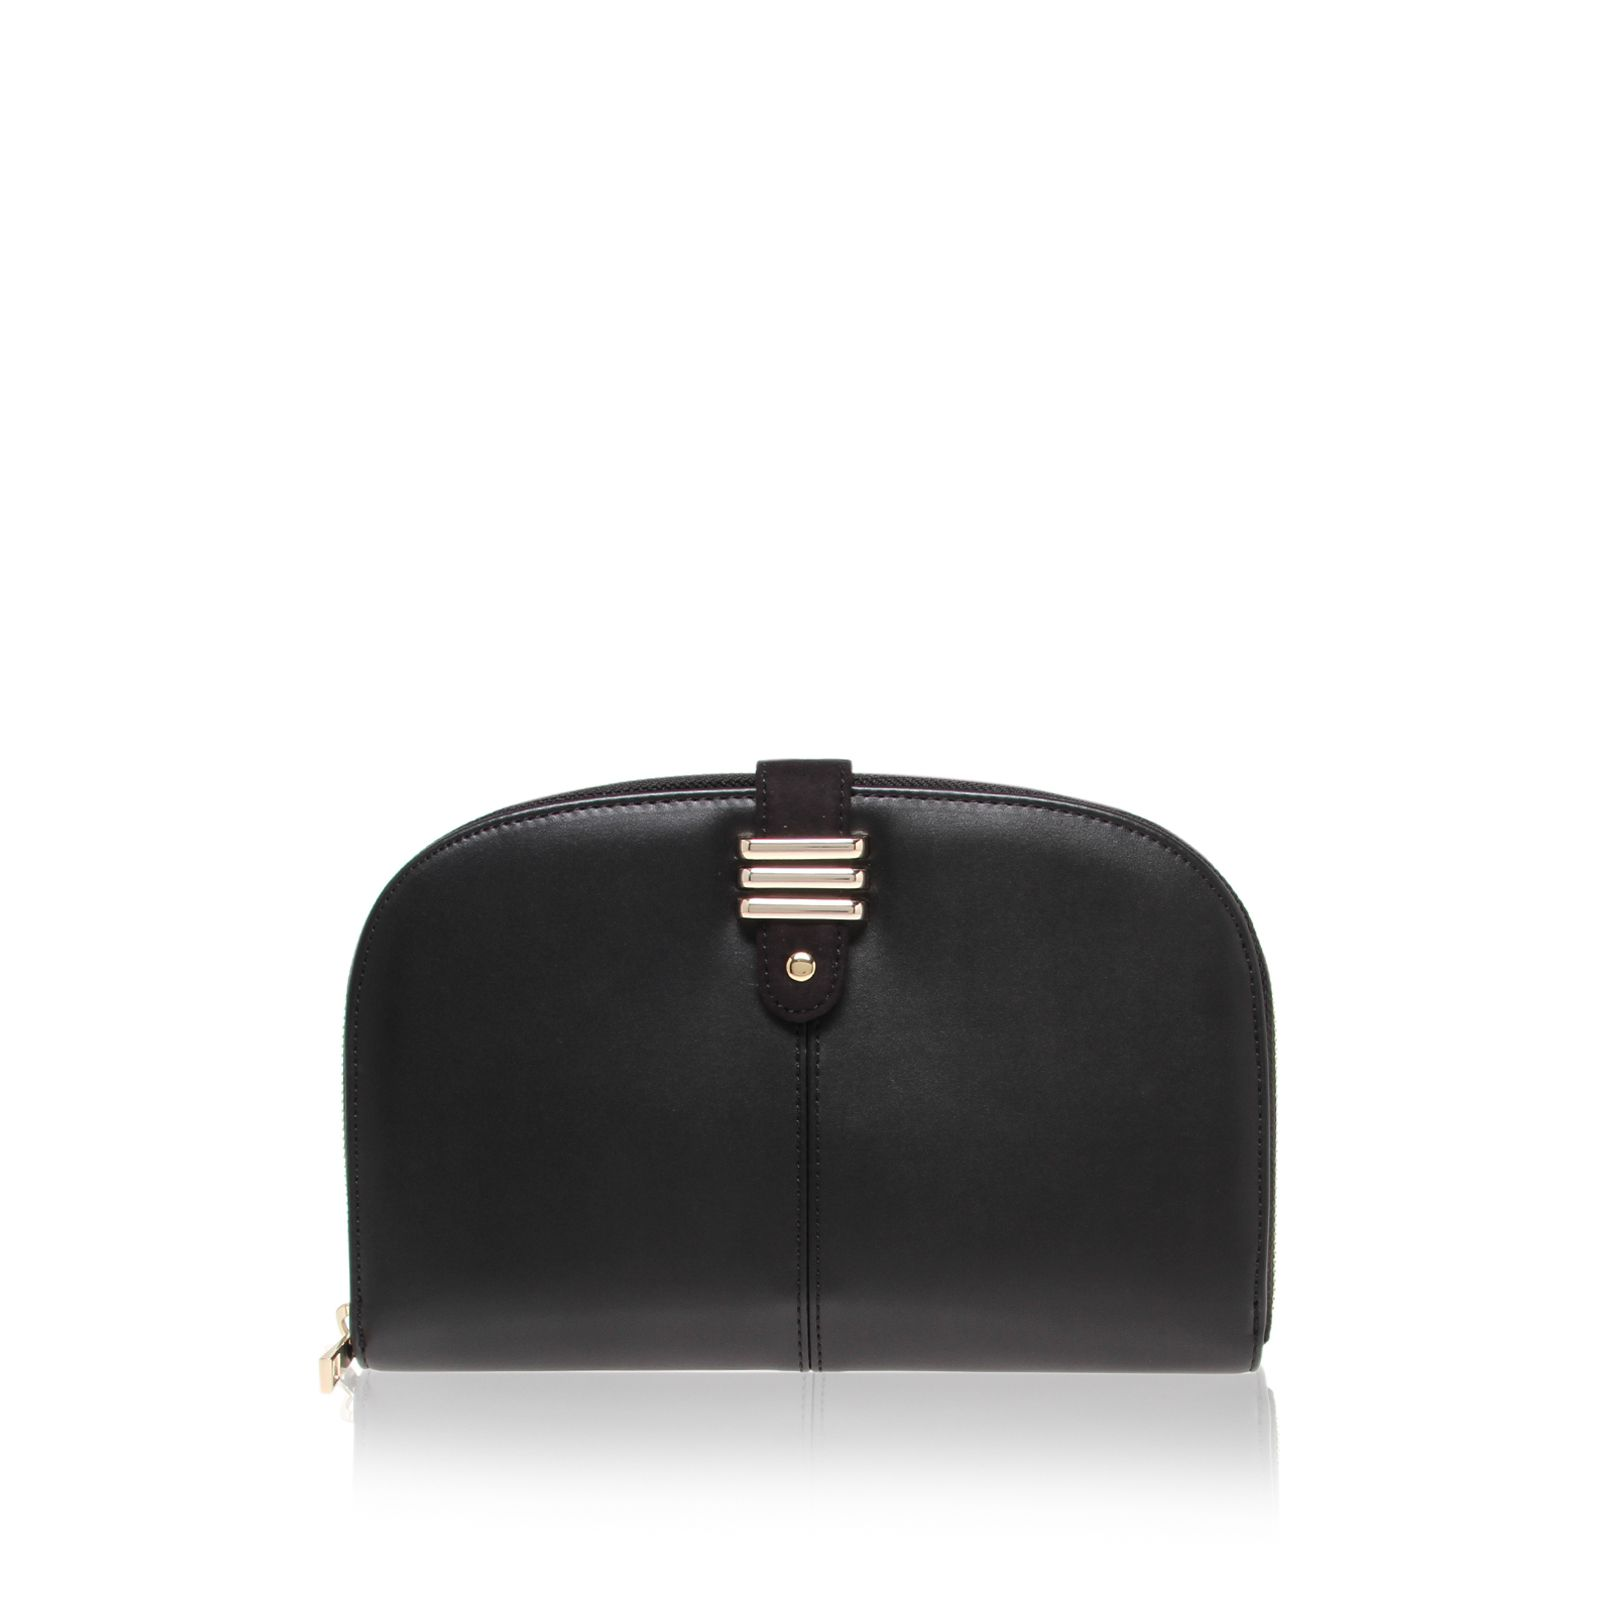 Treasure Black Handbag